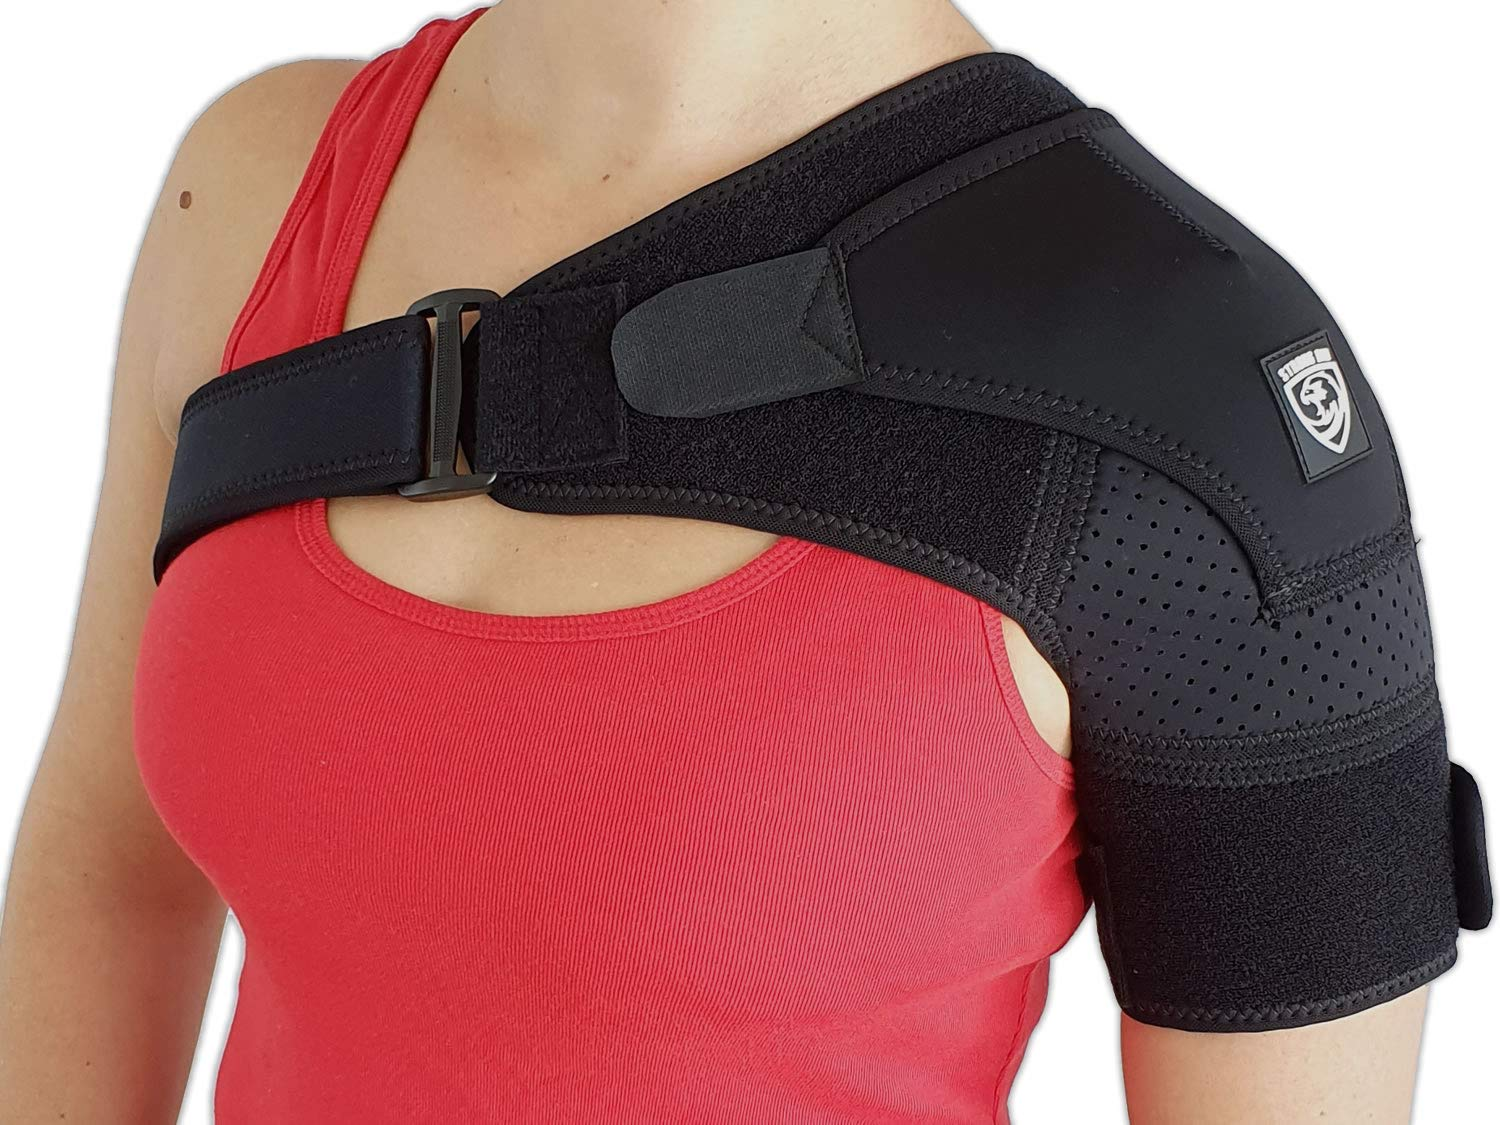 Shoulder Brace Support by Strong AID. for Rotator Cuff Pain AC Joint Dislocated Frozen Tear Injury Adjustable Compression Stability Sleeve (Black, S-M)